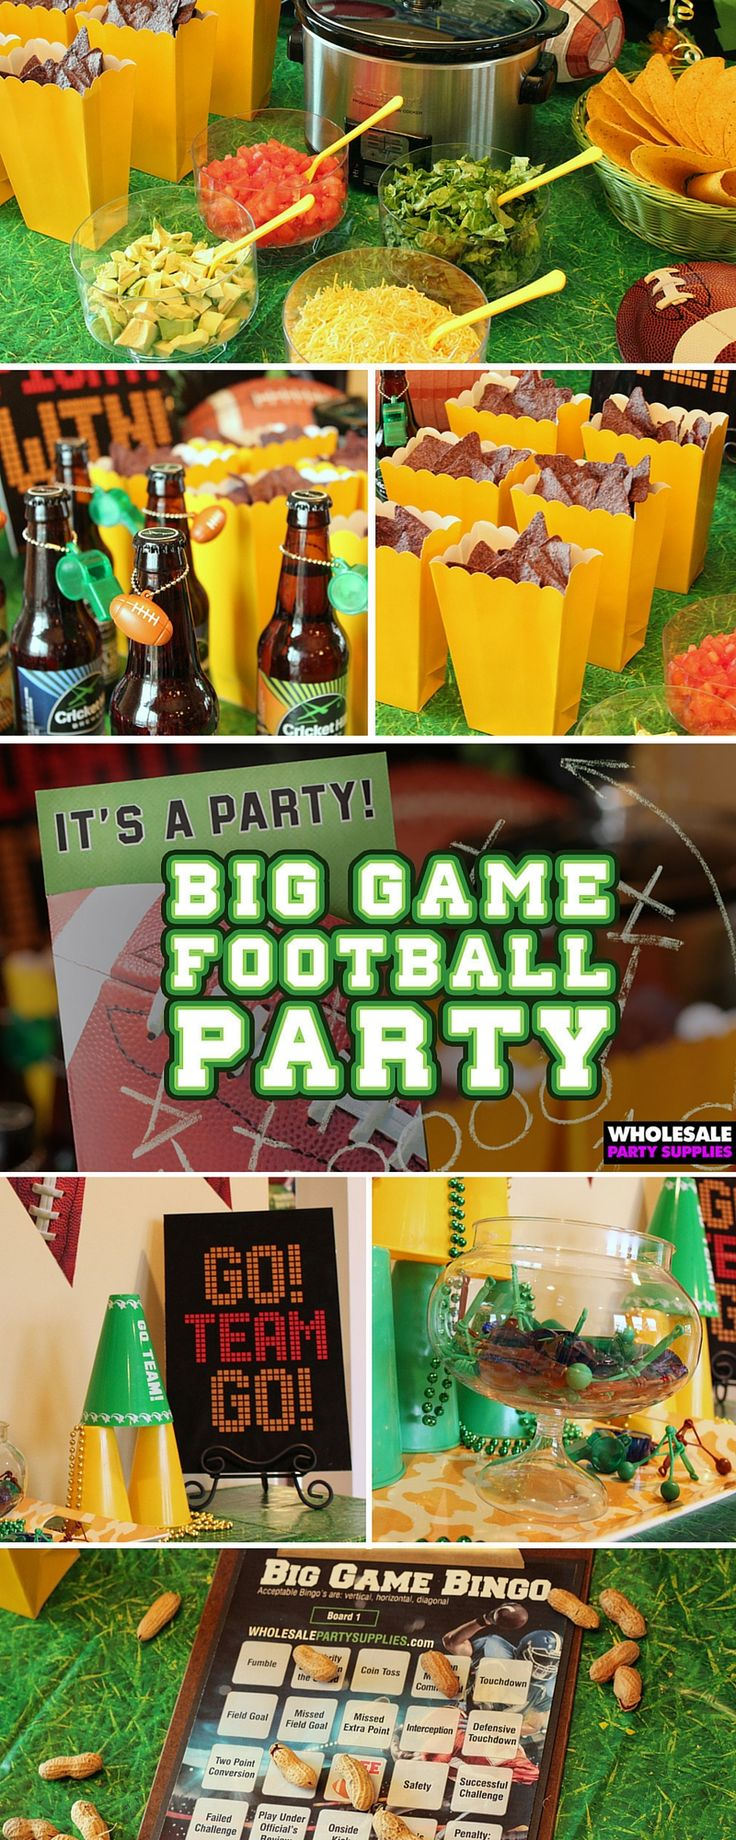 Get ready for the big game with these football party ideas just in time for the #SuperBowl